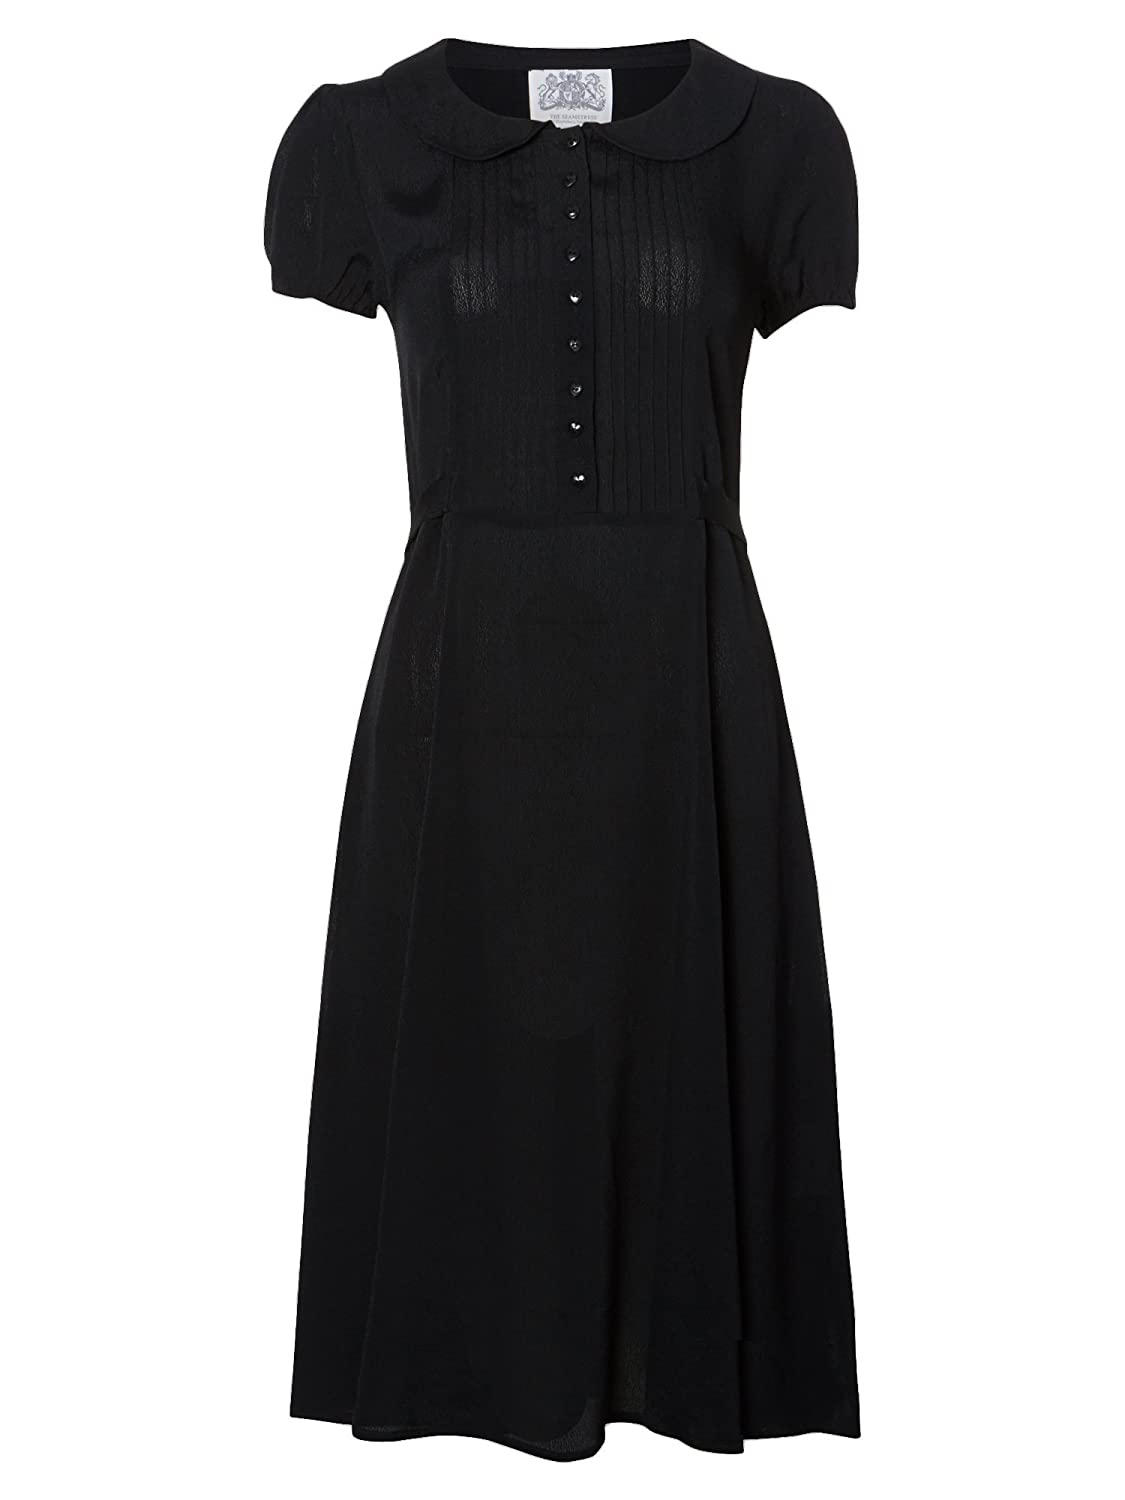 1940s Fashion Advice for Tall Women 1940s Authentic Vintage Inspired Dorothy Dress in Black £79.00 AT vintagedancer.com